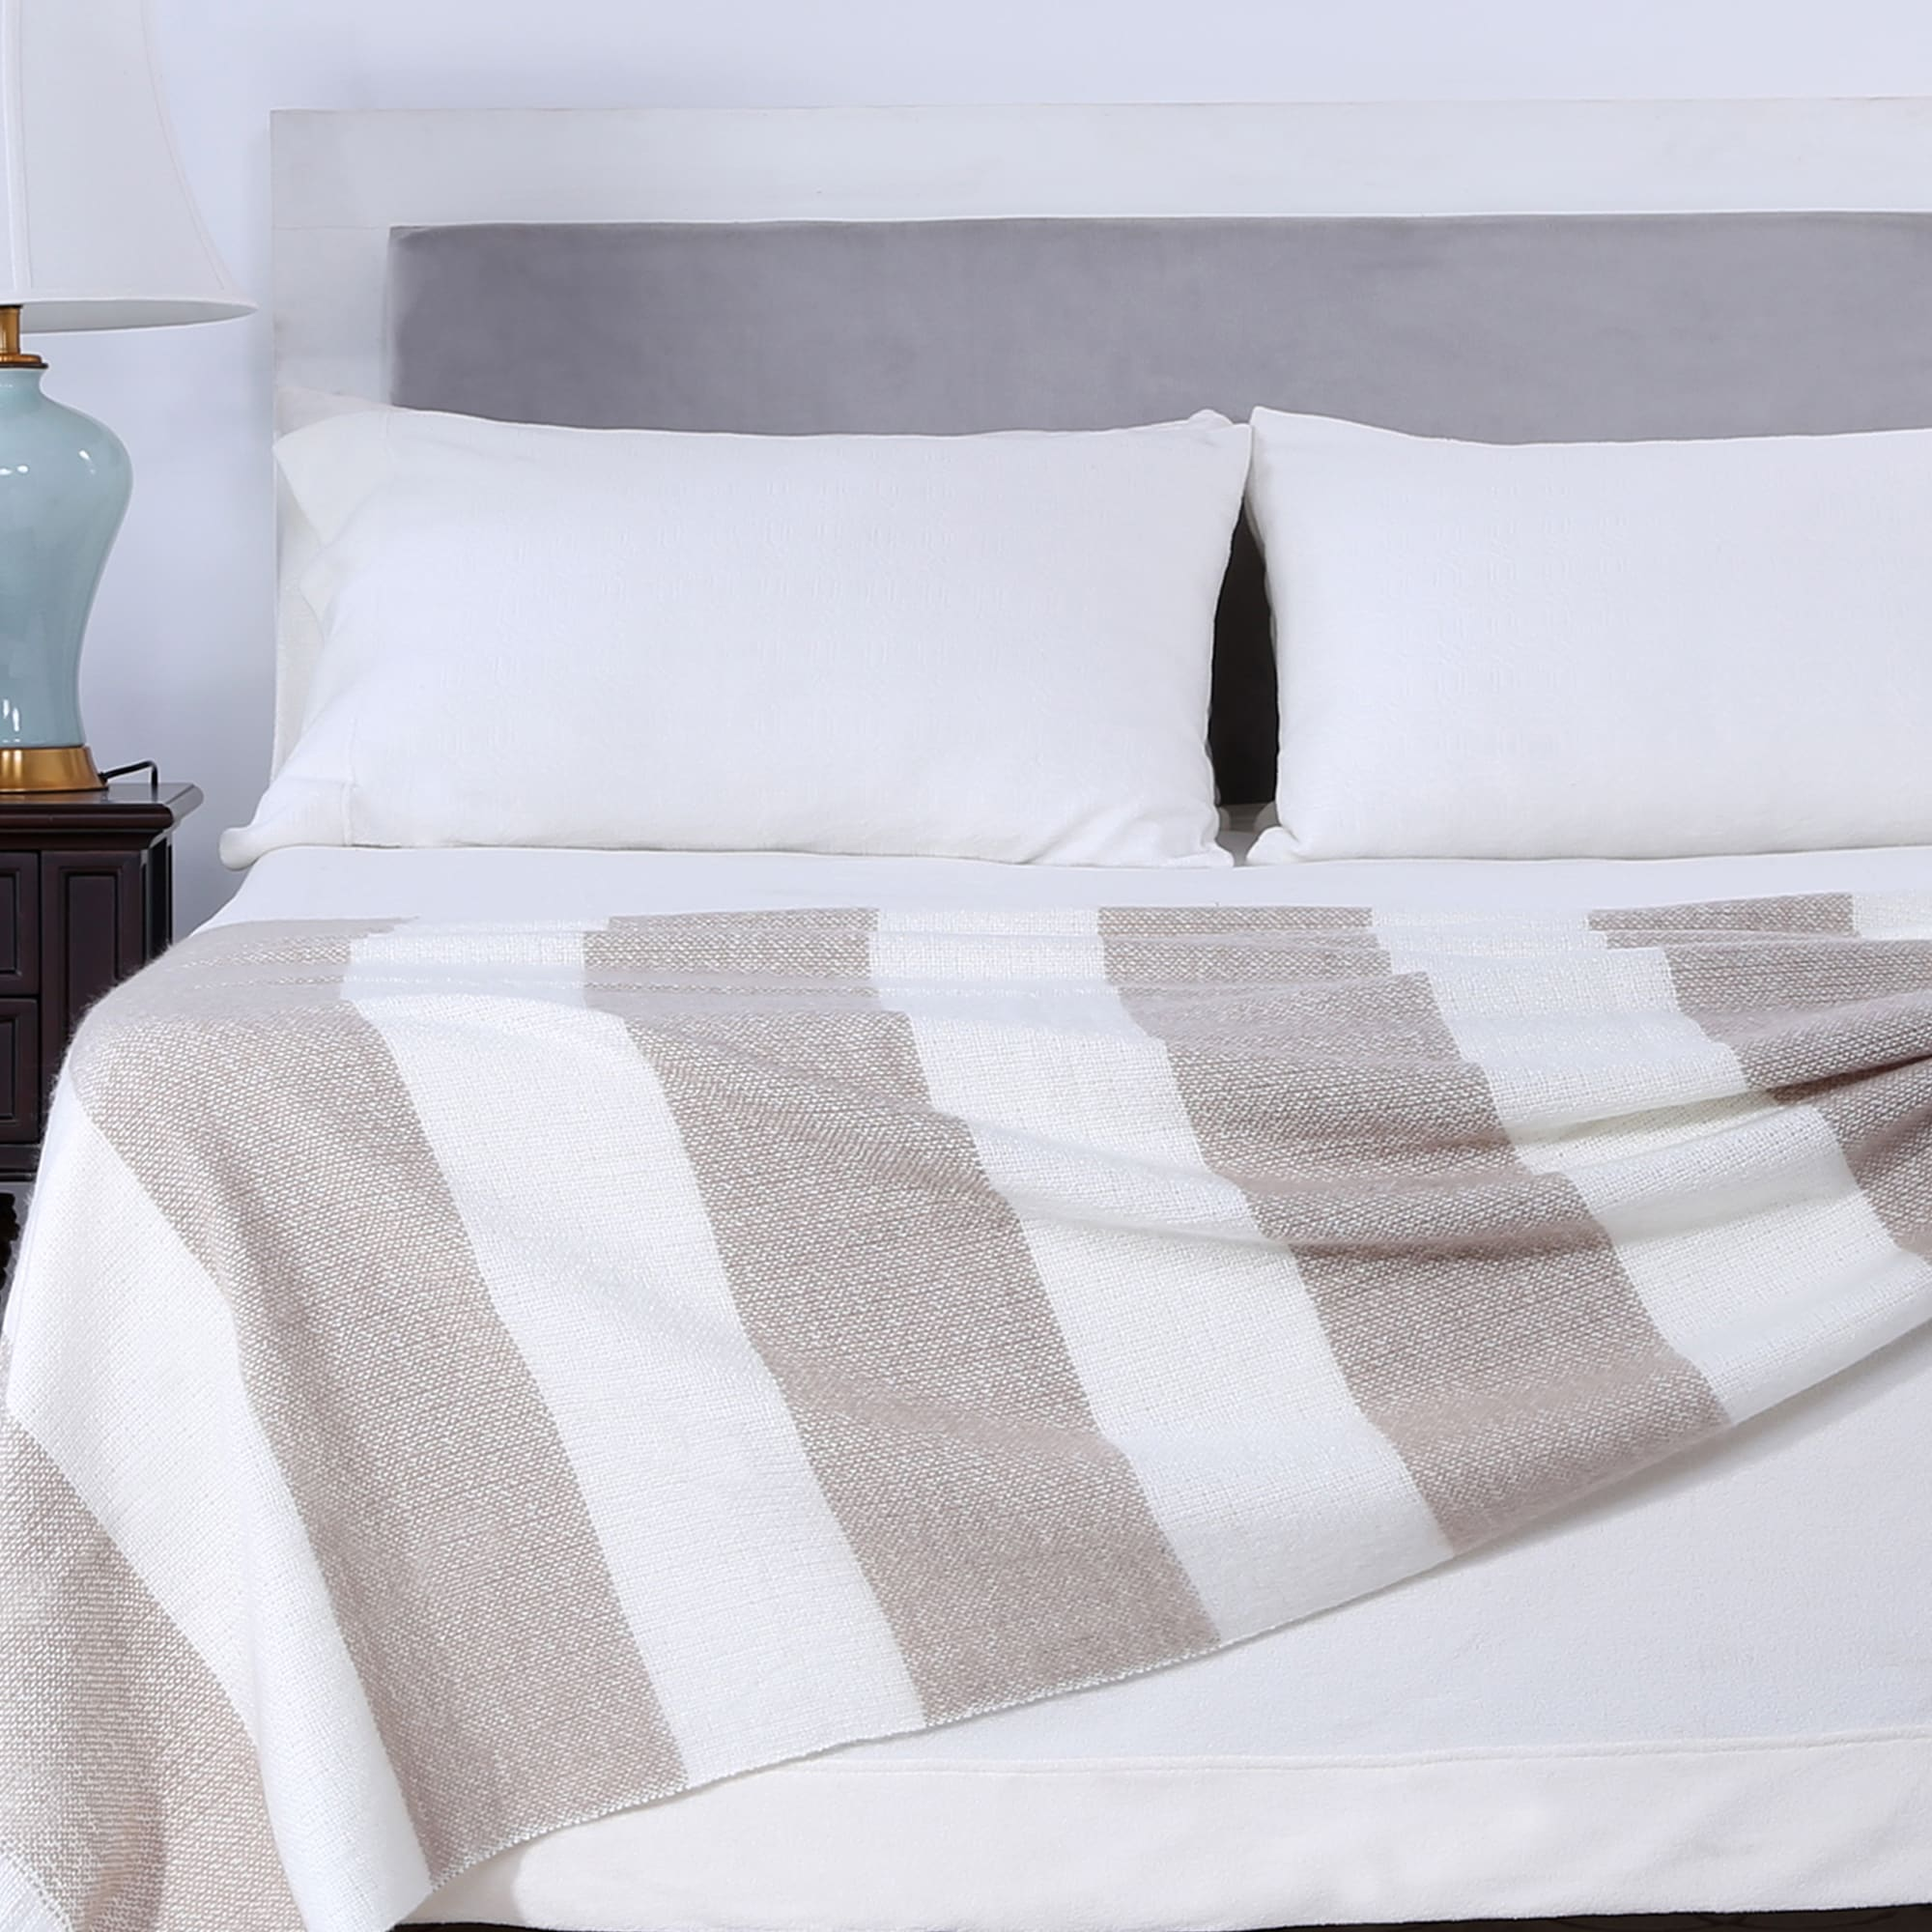 1864266a43 Shop Berkshire Blanket Nautical Striped Woven Throw - Free Shipping On  Orders Over  45 - Overstock - 16201253